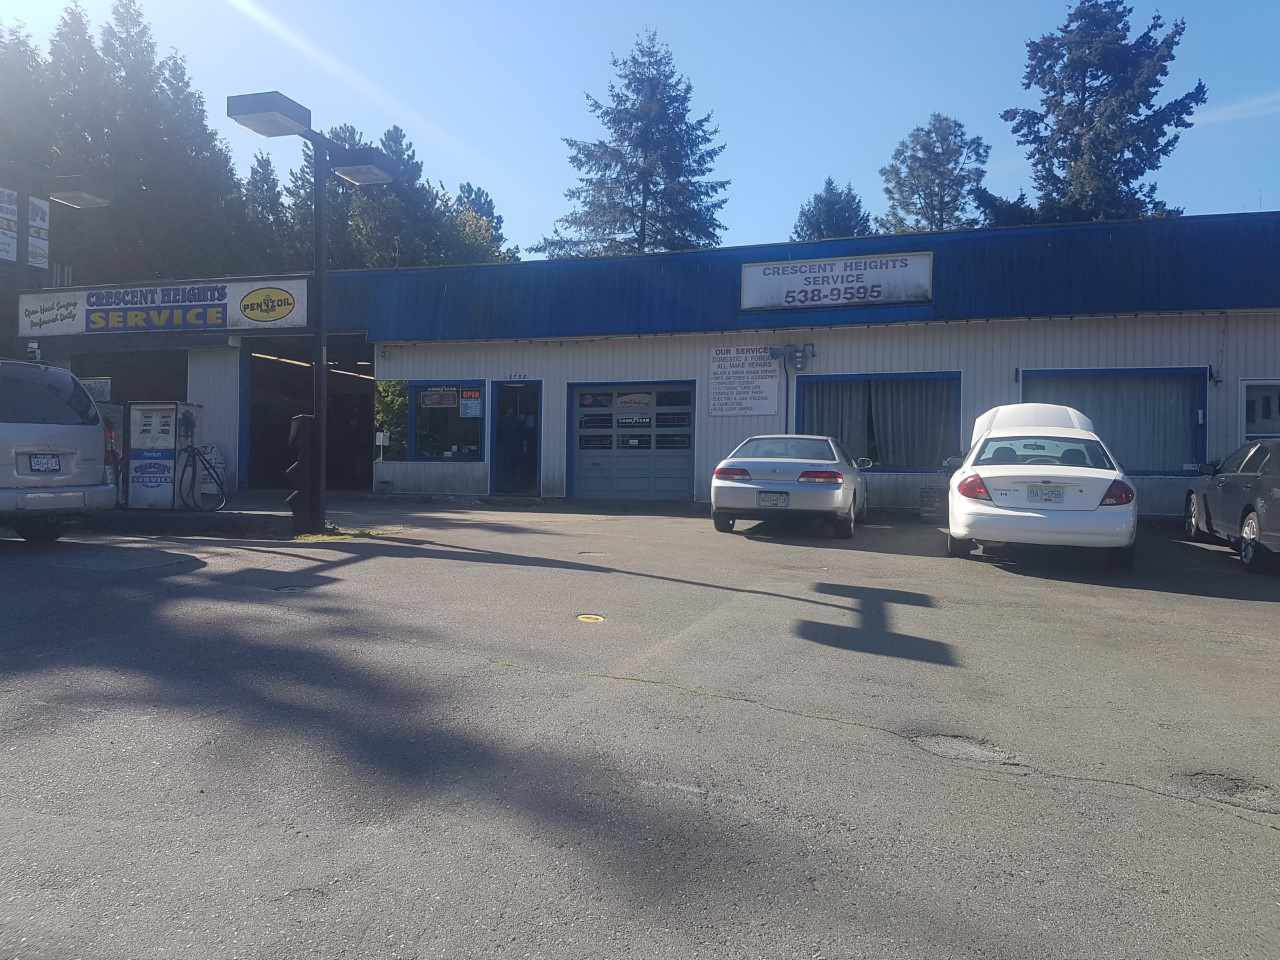 Main Photo: 12758 28 Avenue in Surrey: Crescent Bch Ocean Pk. Business with Property for sale (South Surrey White Rock)  : MLS®# C8033617